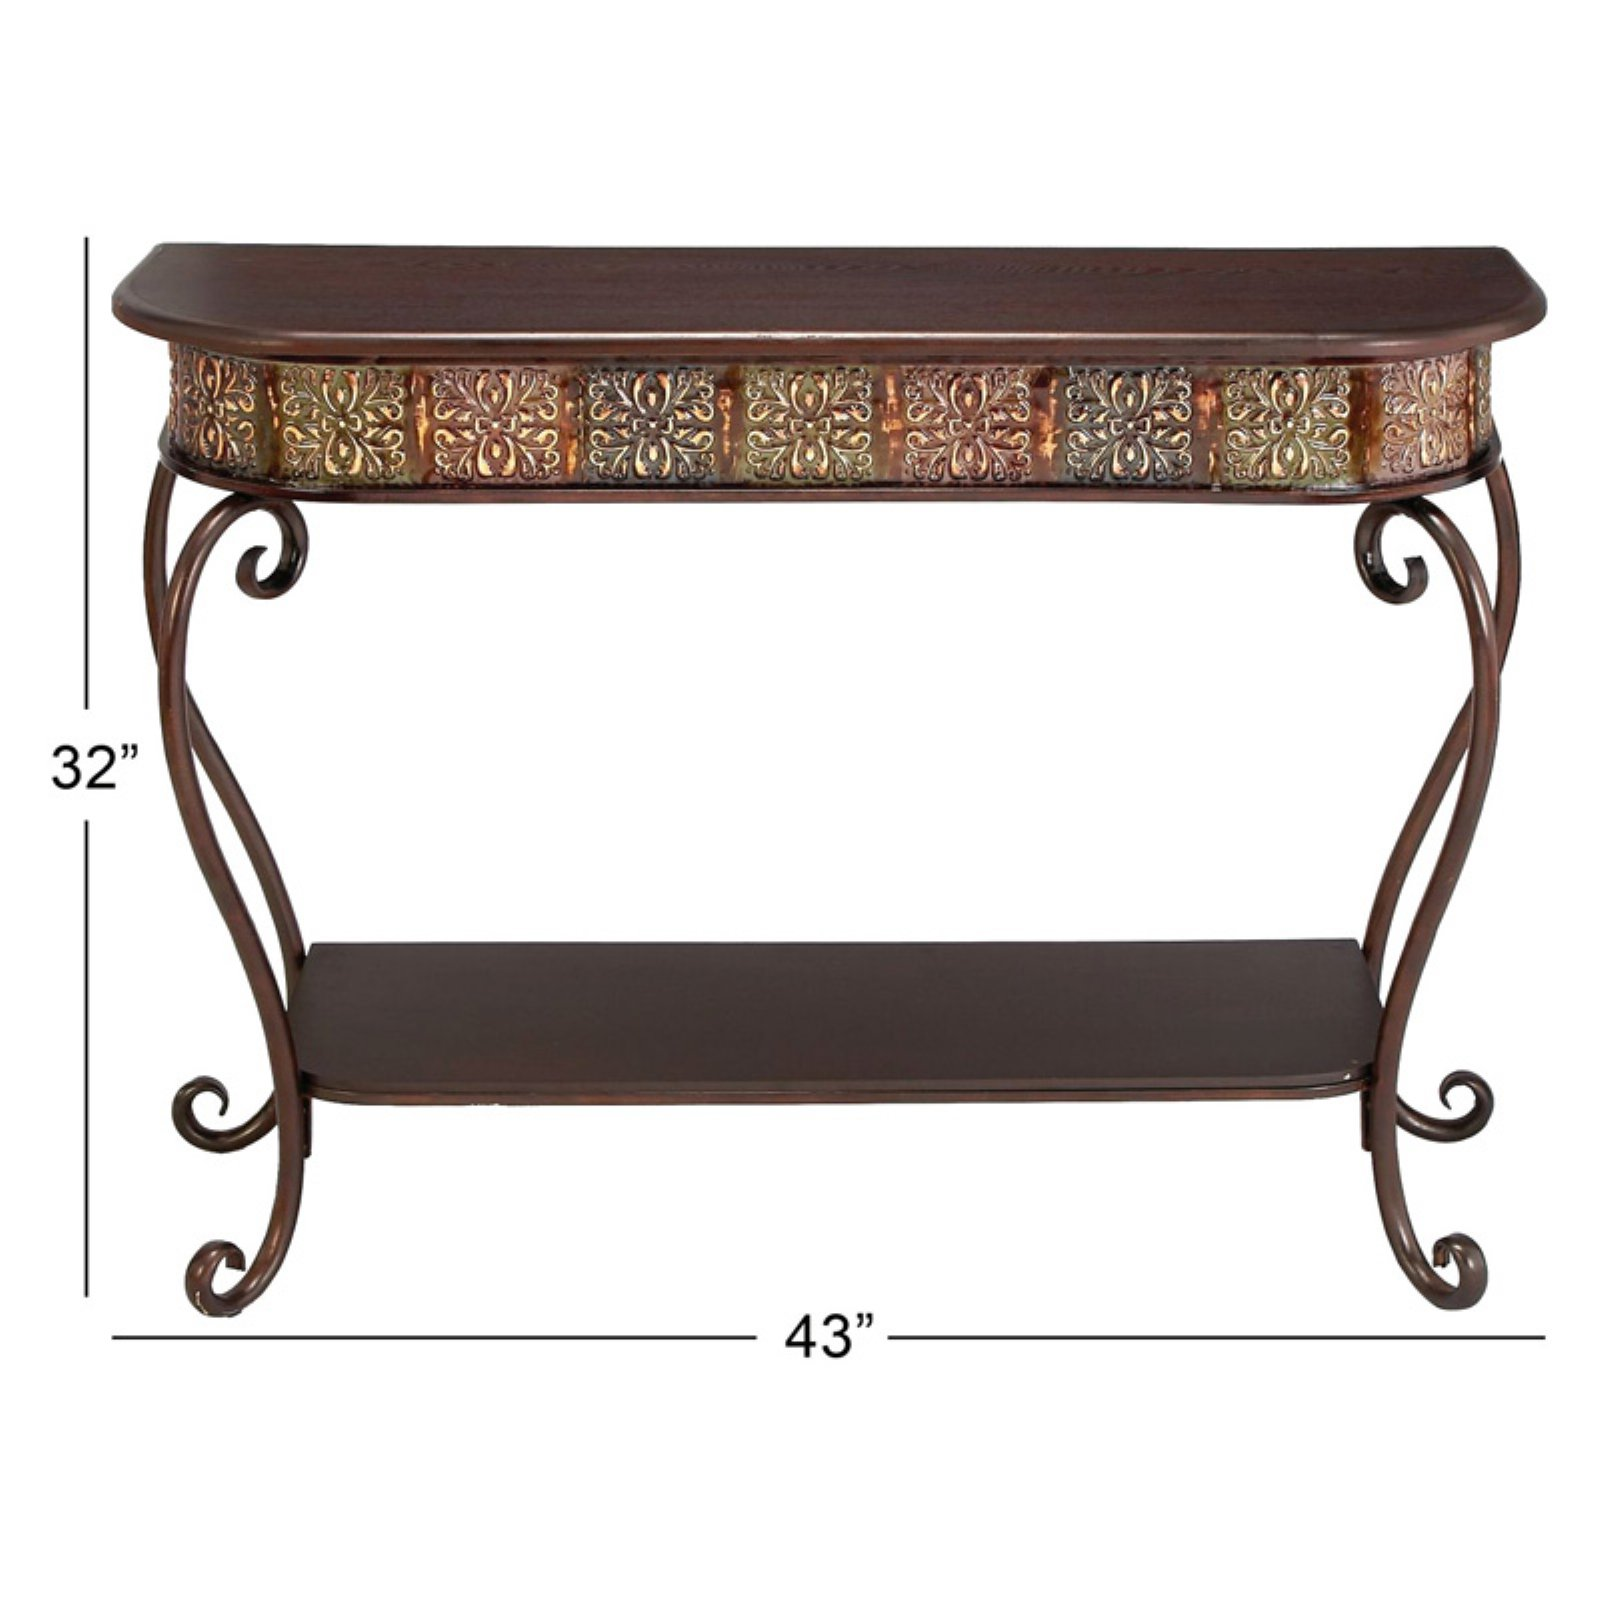 Wood metal console table modern accent shelf stand sofa entryway hall furniture